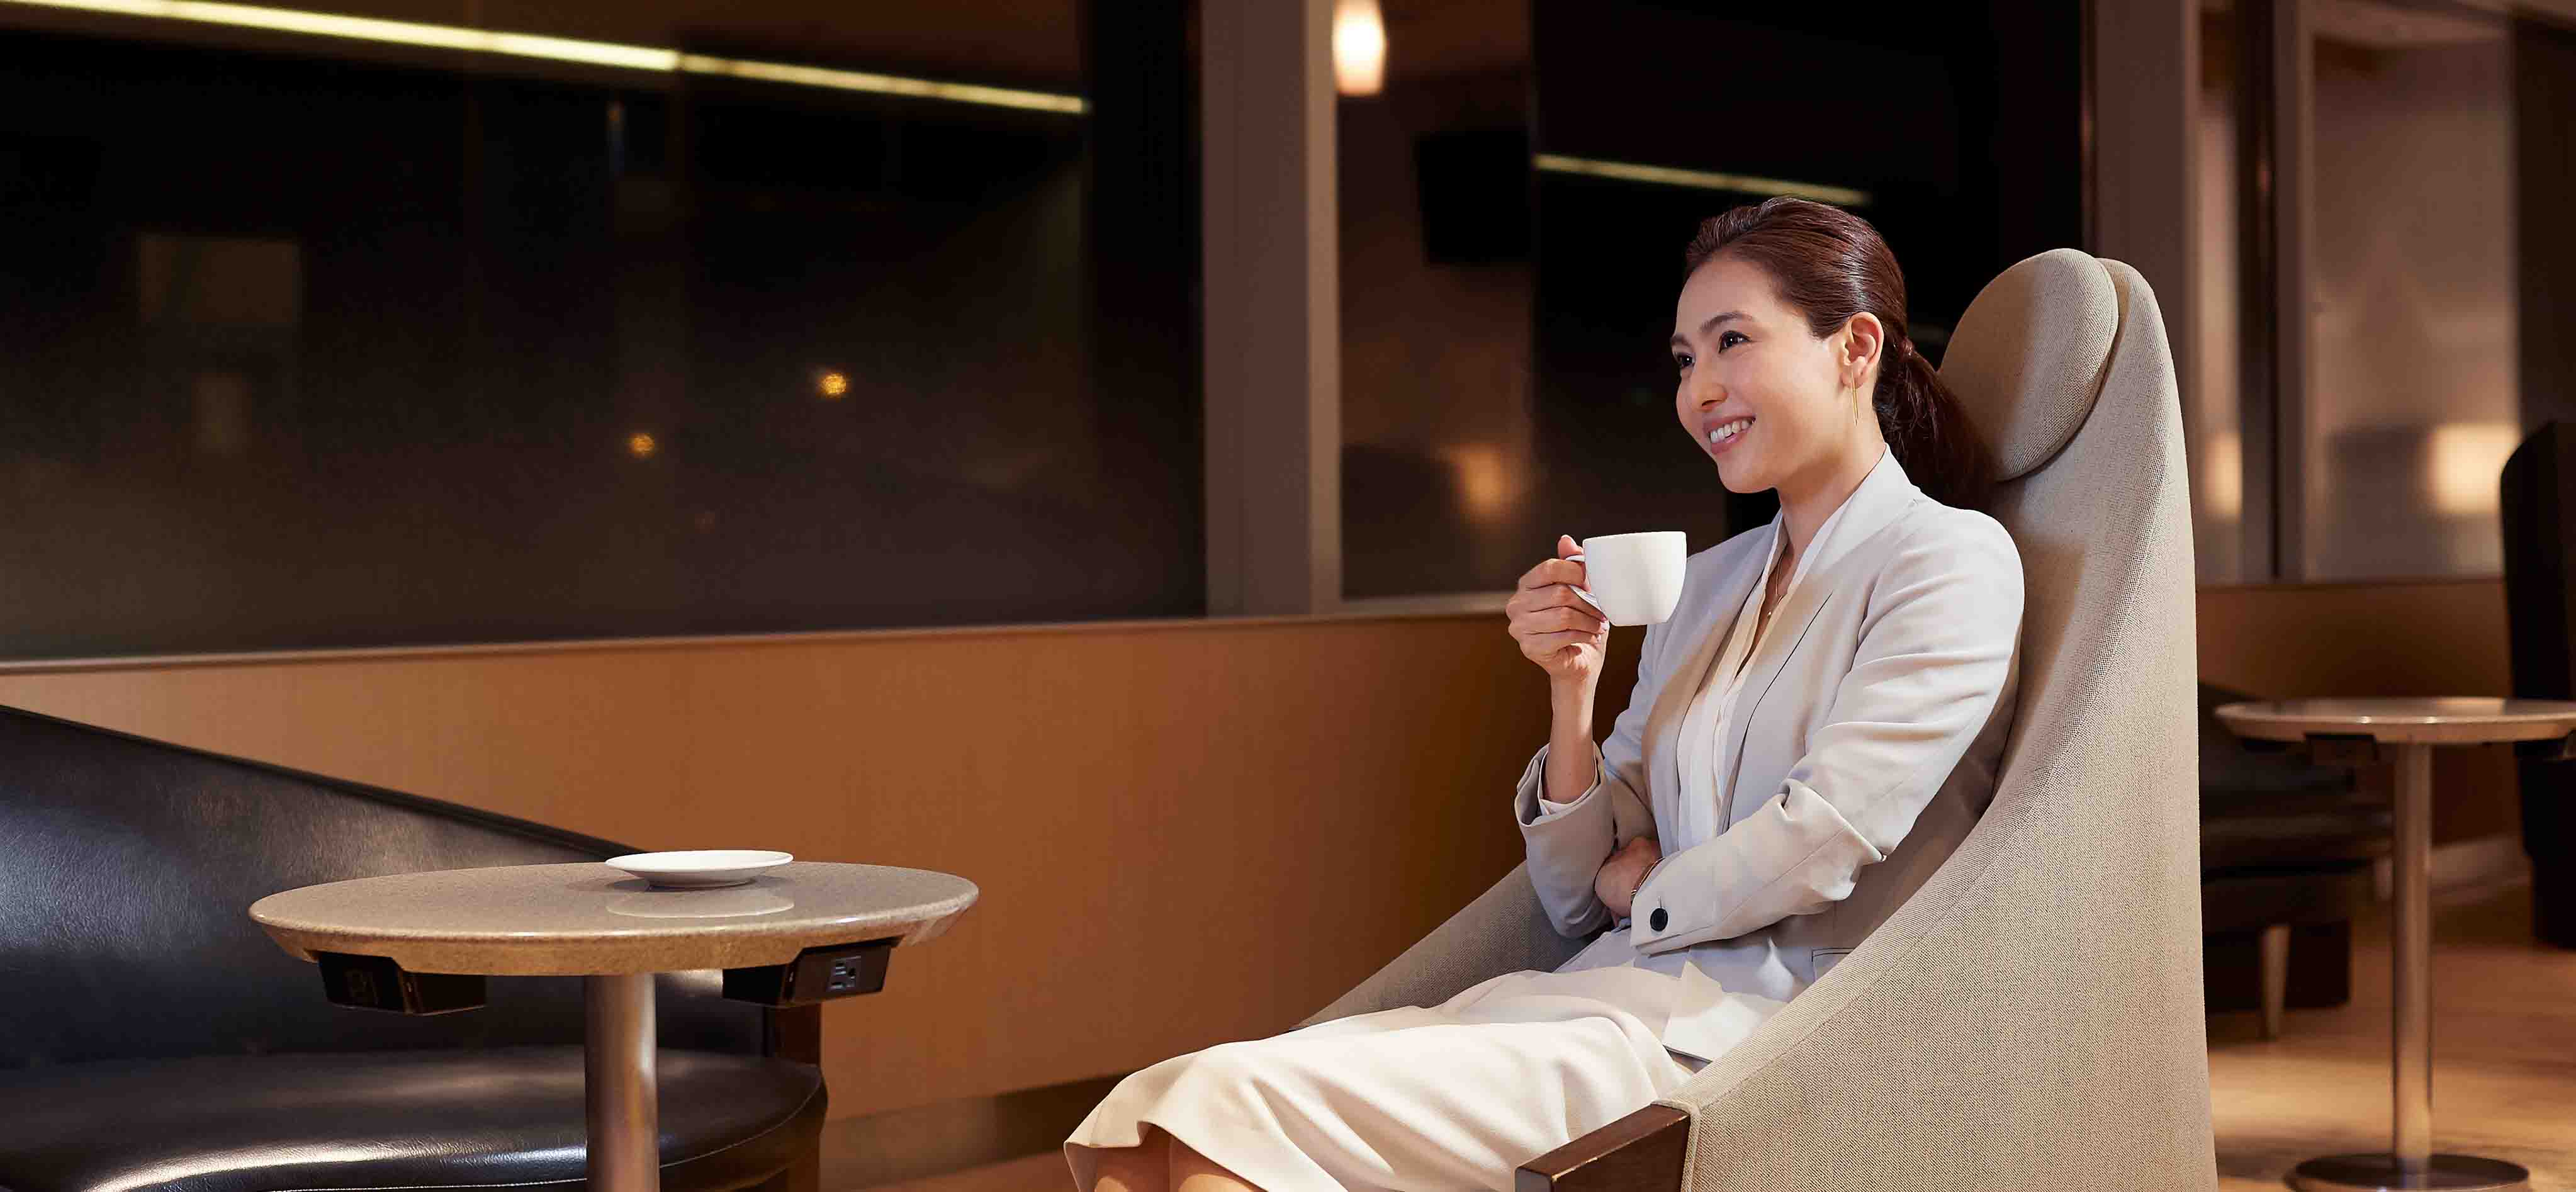 A woman drinking coffee at lounge